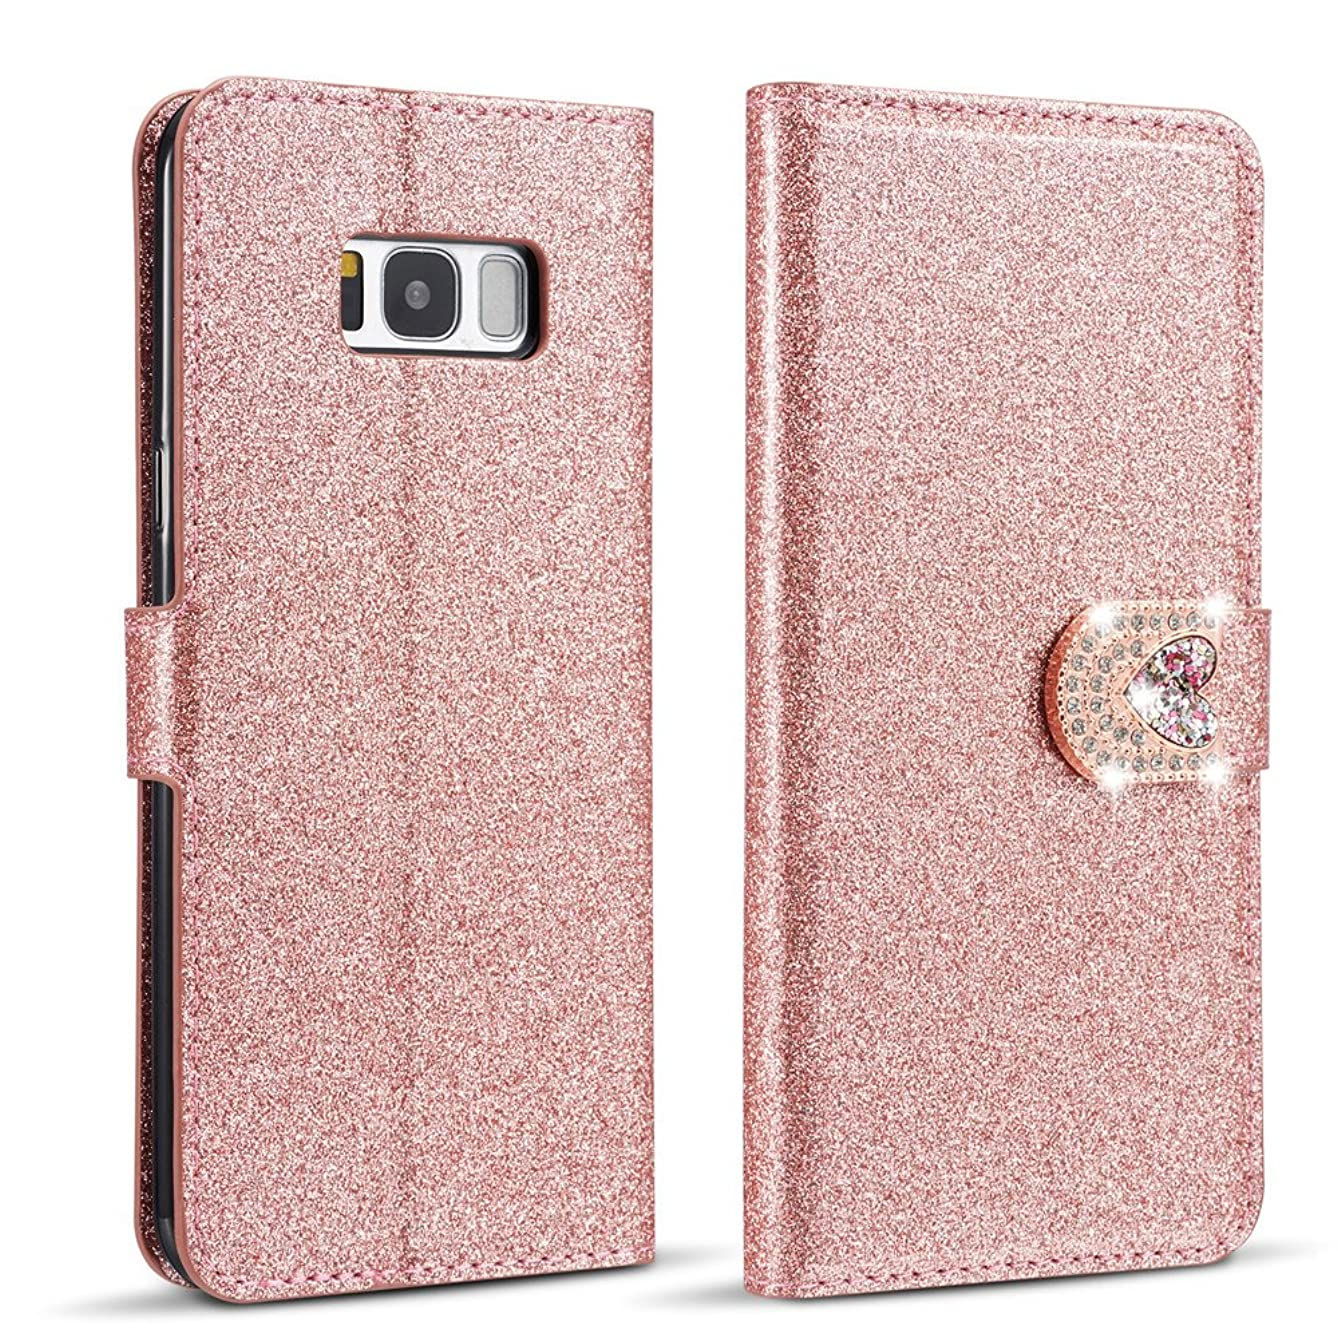 ZCDAYE Bling Glitter [Magnetic Closure] PU Leather Flip Wallet [Love Diamond Buckle] Folio Inner Soft TPU Smooth Finish Stand Cover Case for Samsung Galaxy A5 2017 - Rose Gold